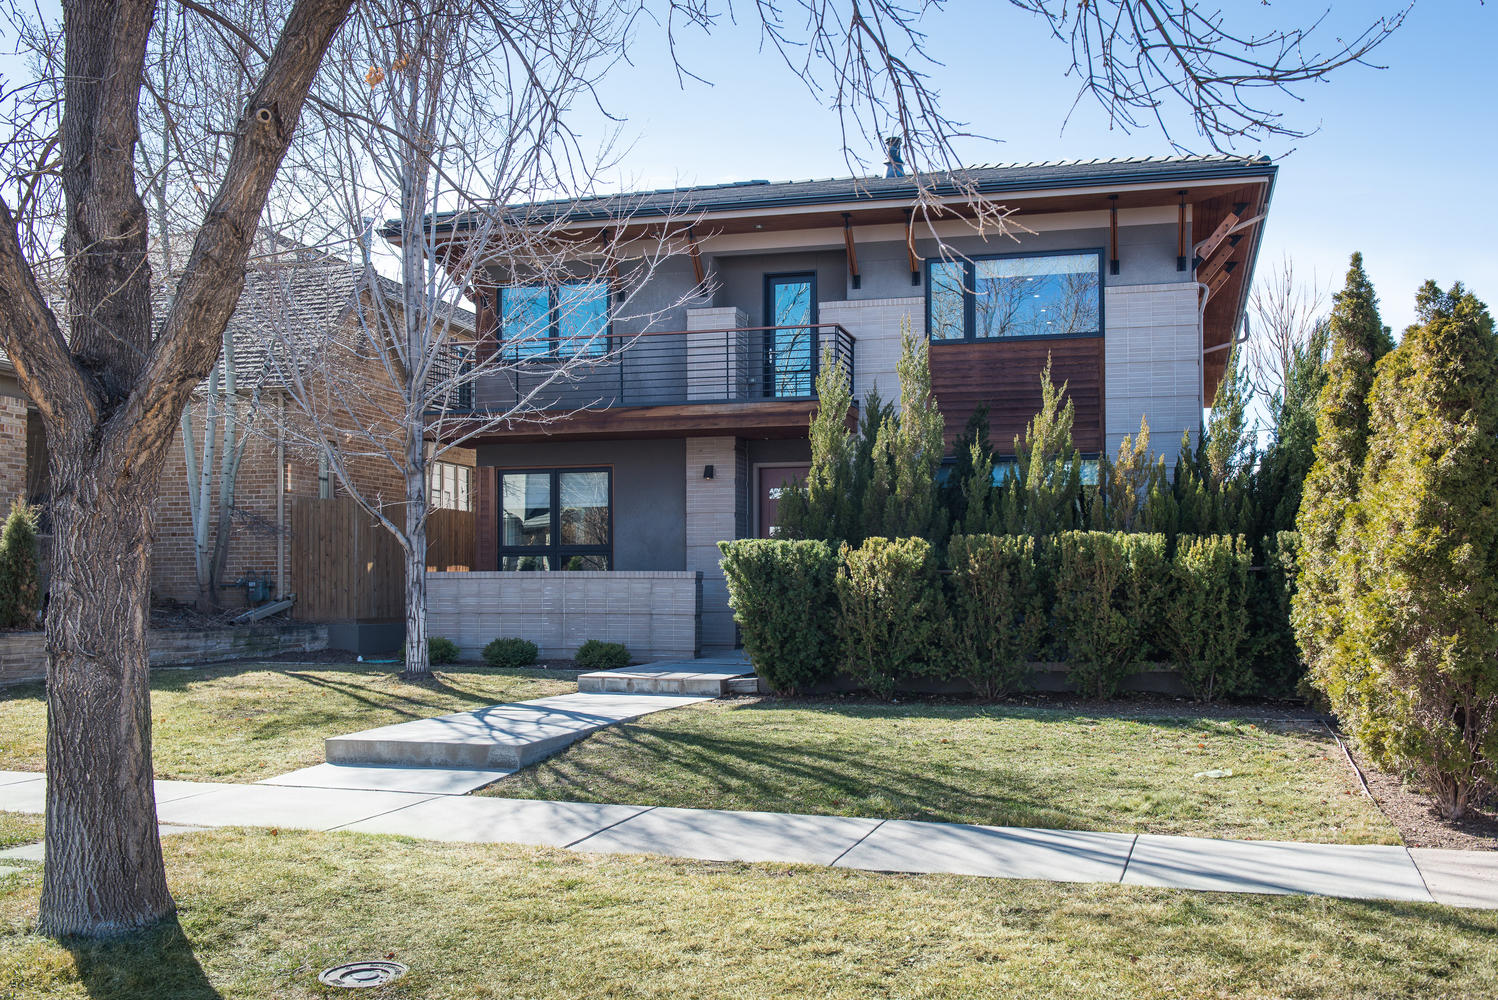 Casa Unifamiliar por un Venta en Sophisticated single family home 559 Madison Street Denver, Colorado, 80206 Estados Unidos